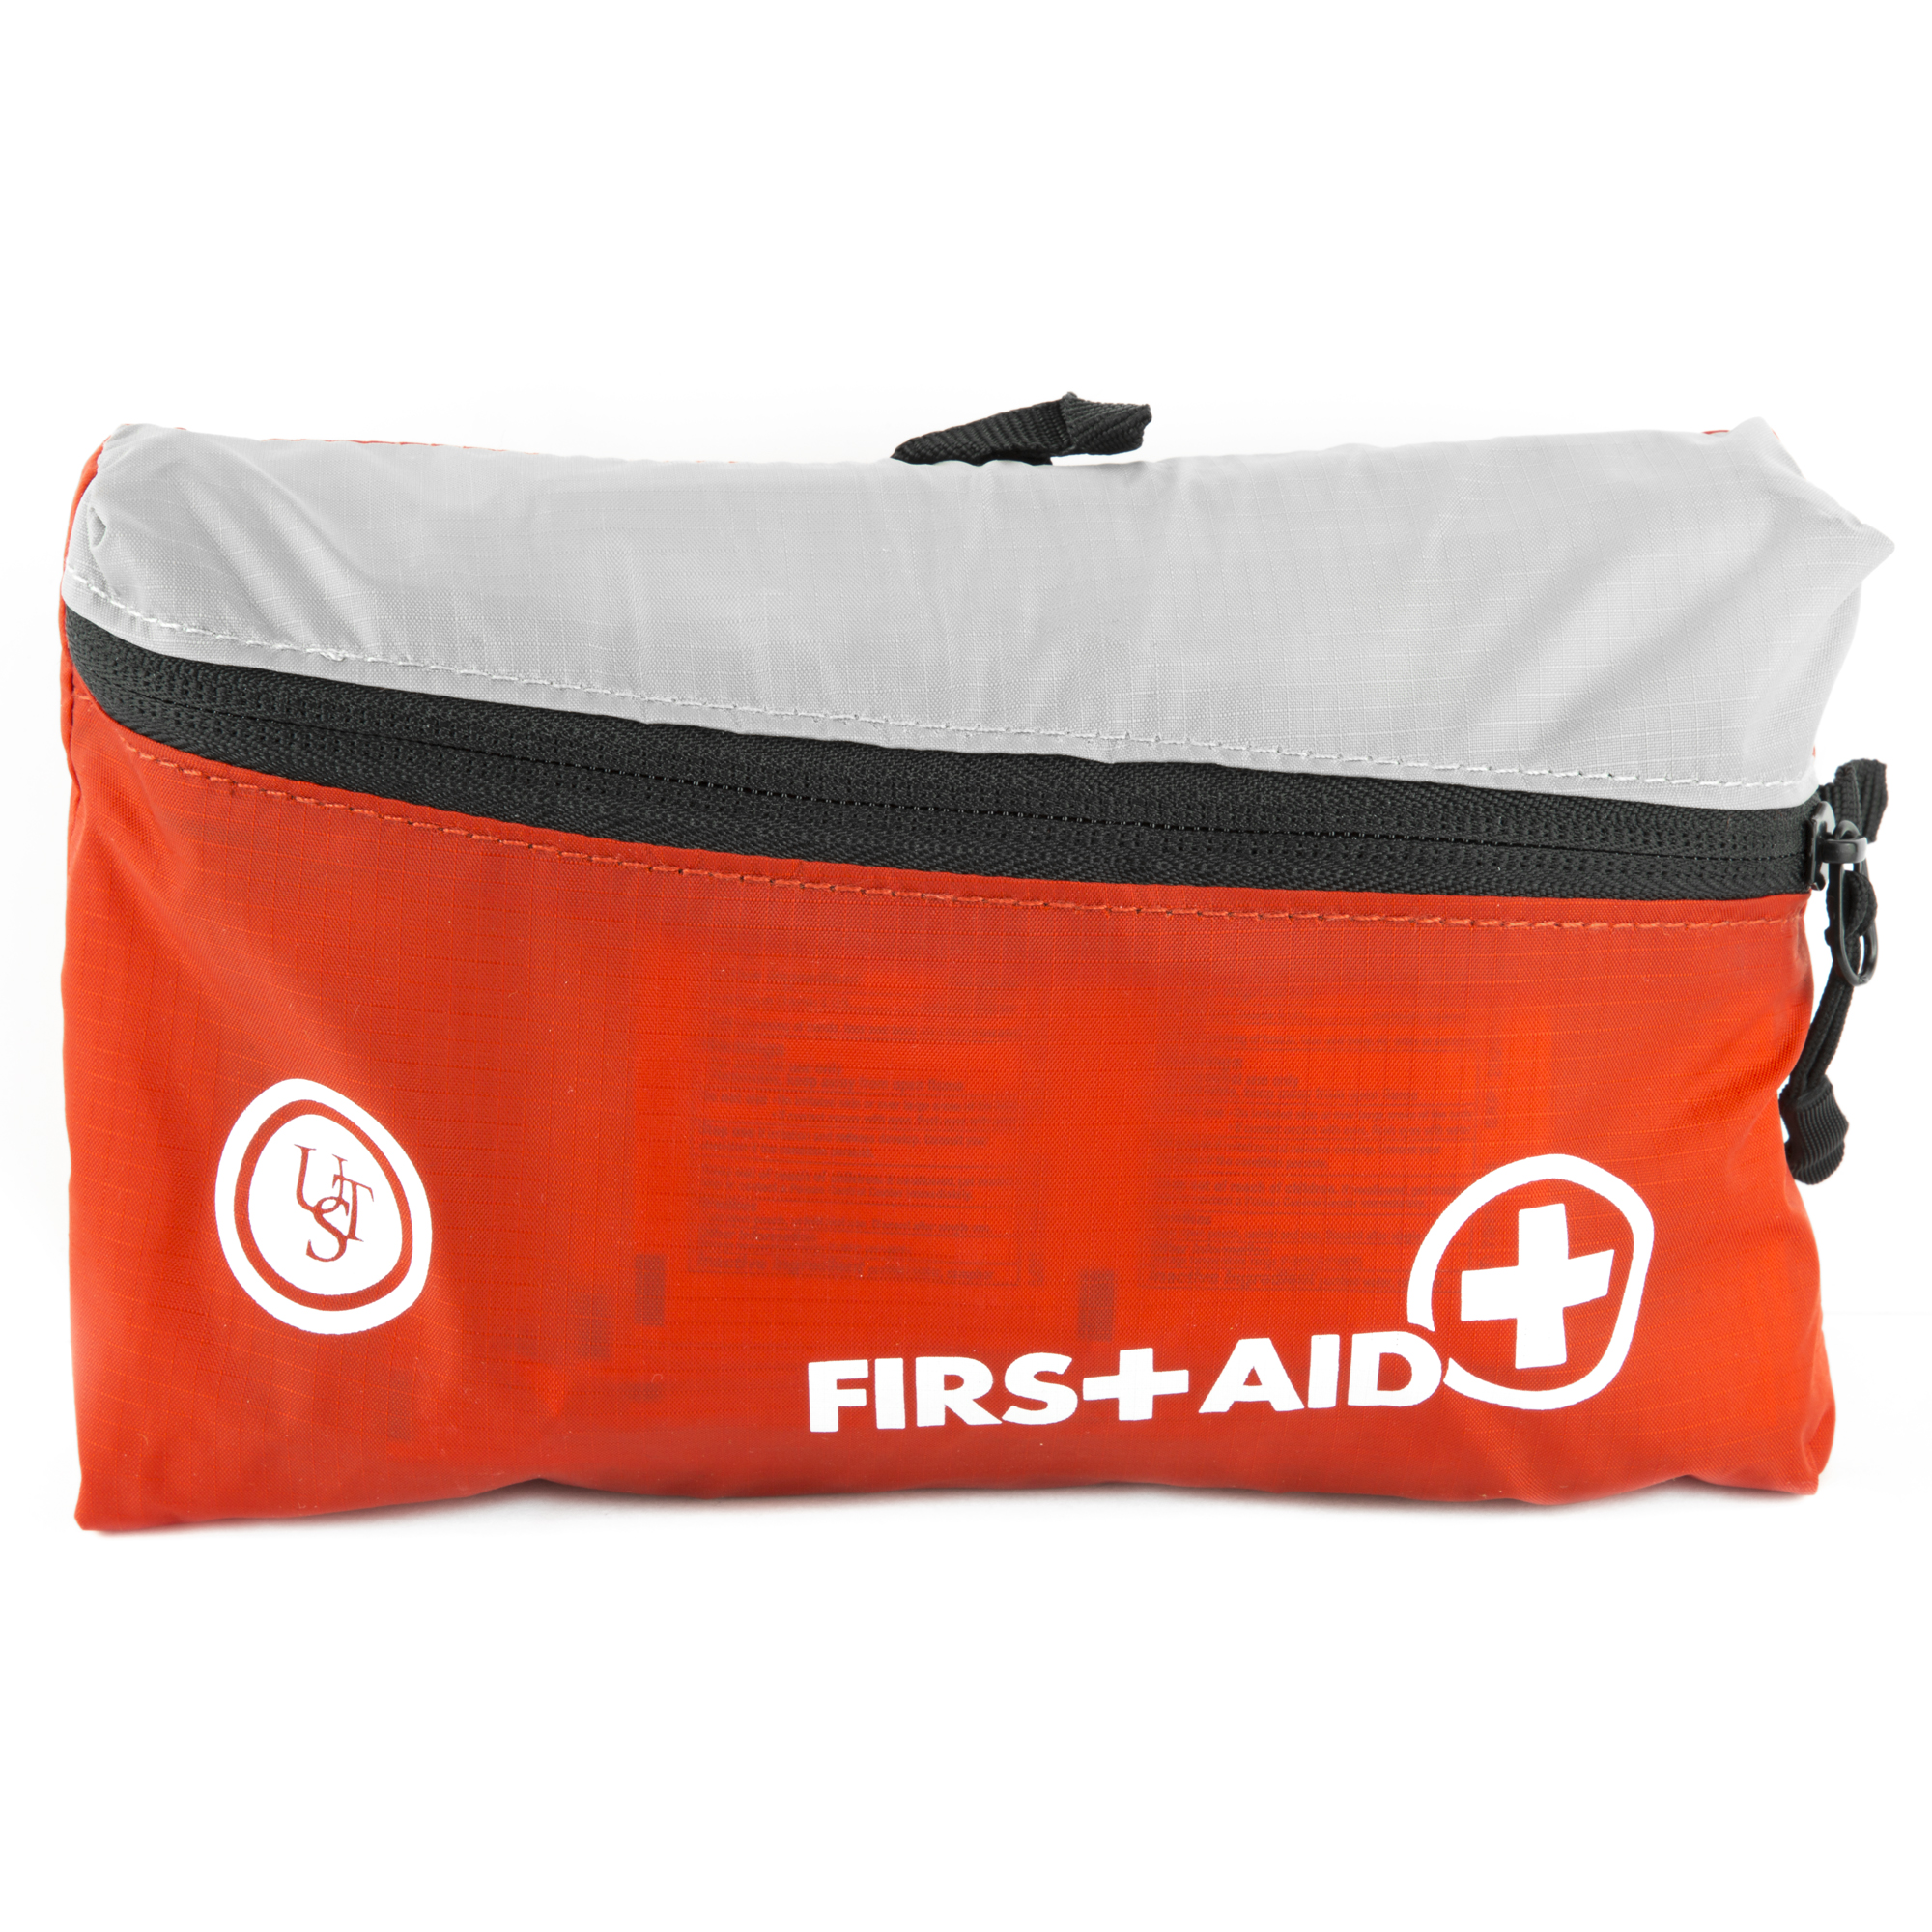 Ultimate Survival Technologies FeatherLite First Aid Kit 2.0 Treats Minor Injuries Nylon Case Red